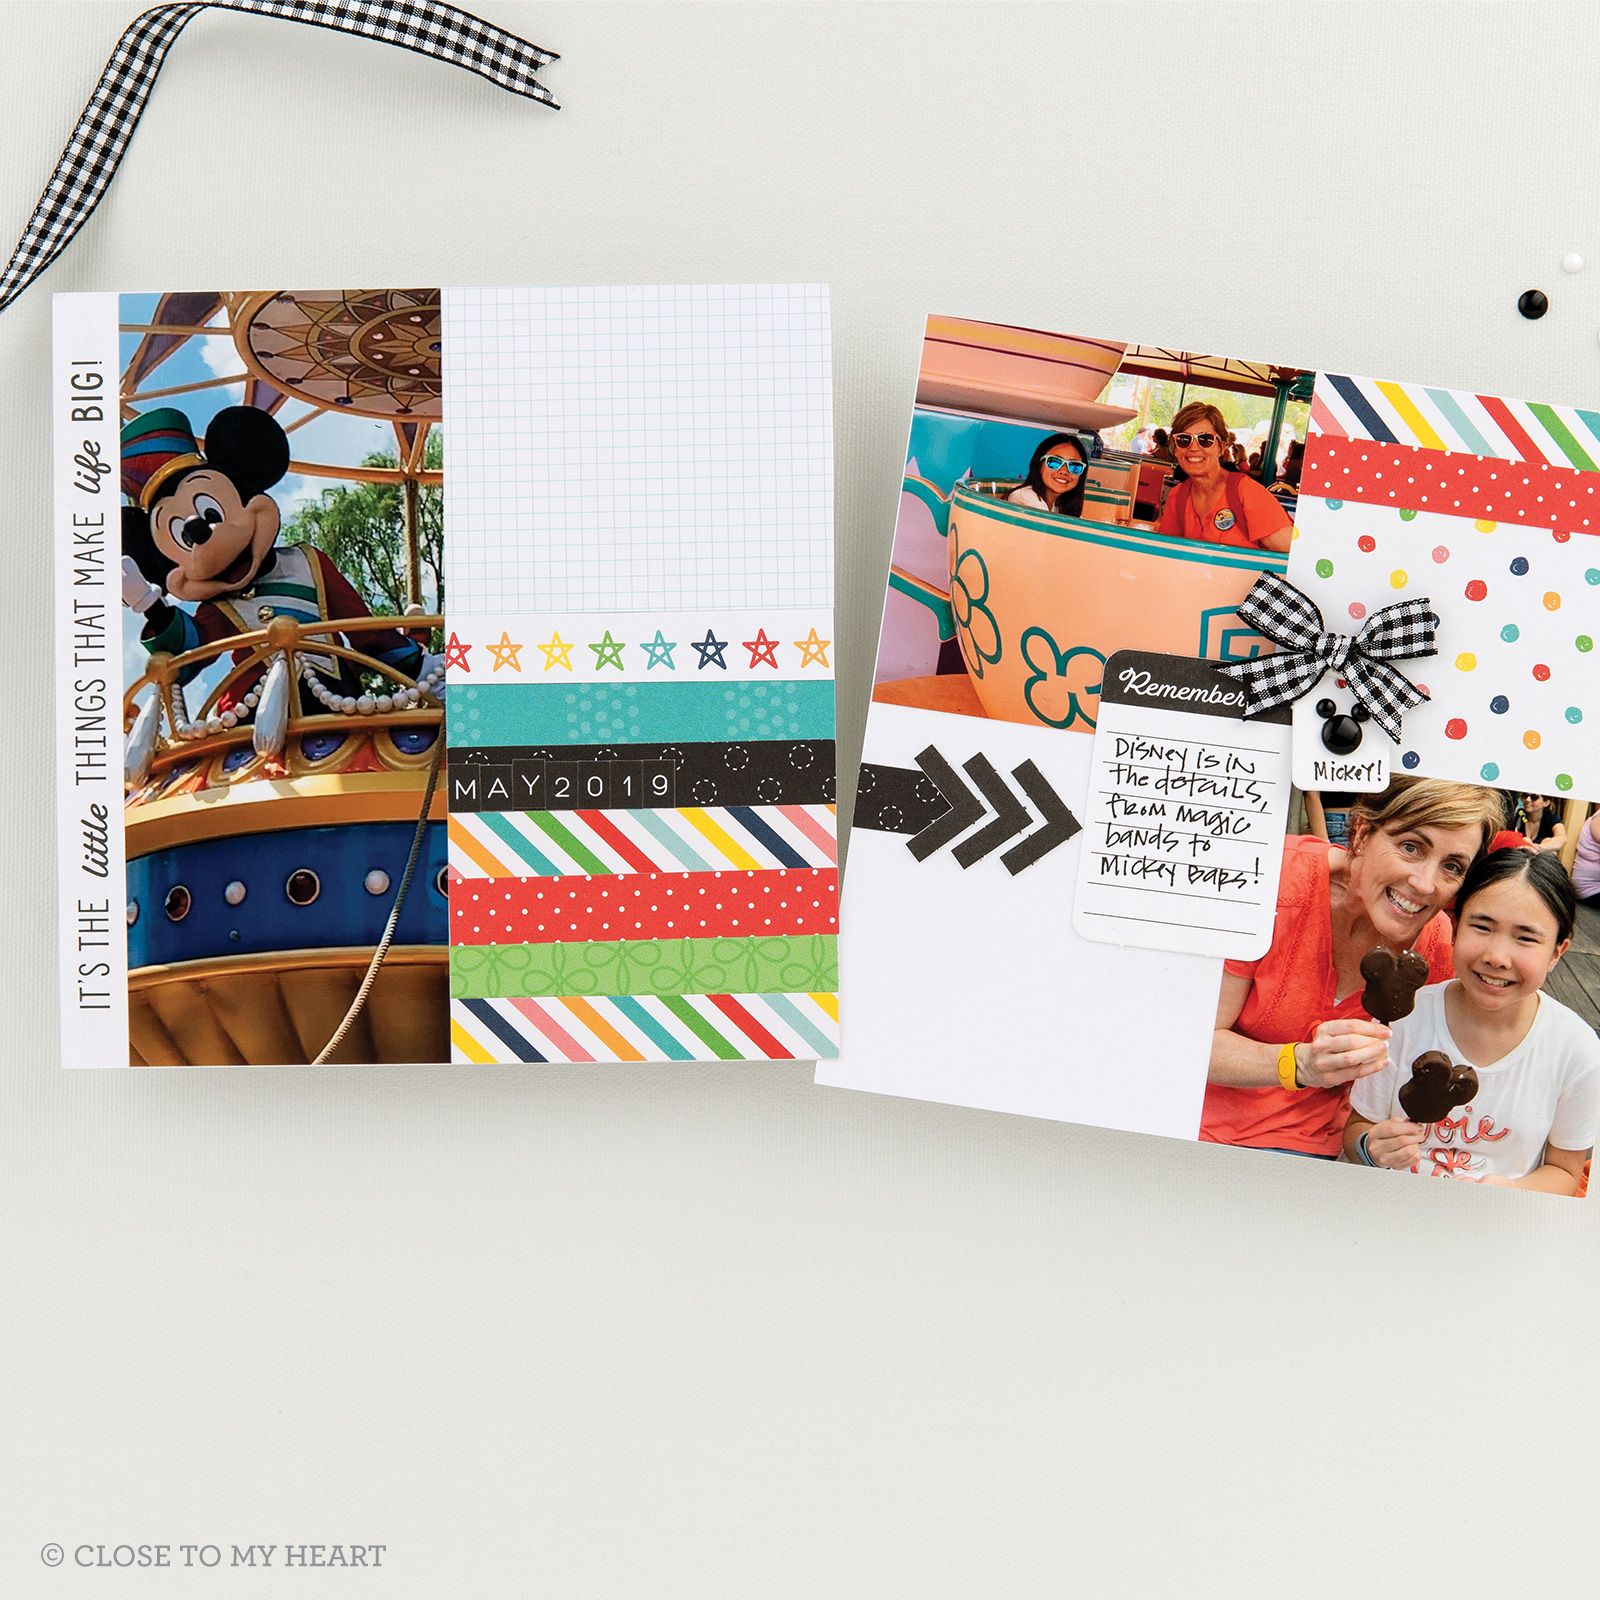 Short Story albums allow you to include LOTS of photos and tell a summary story at the end. Order yours at shaunnarichards.closetomyheart.com.au